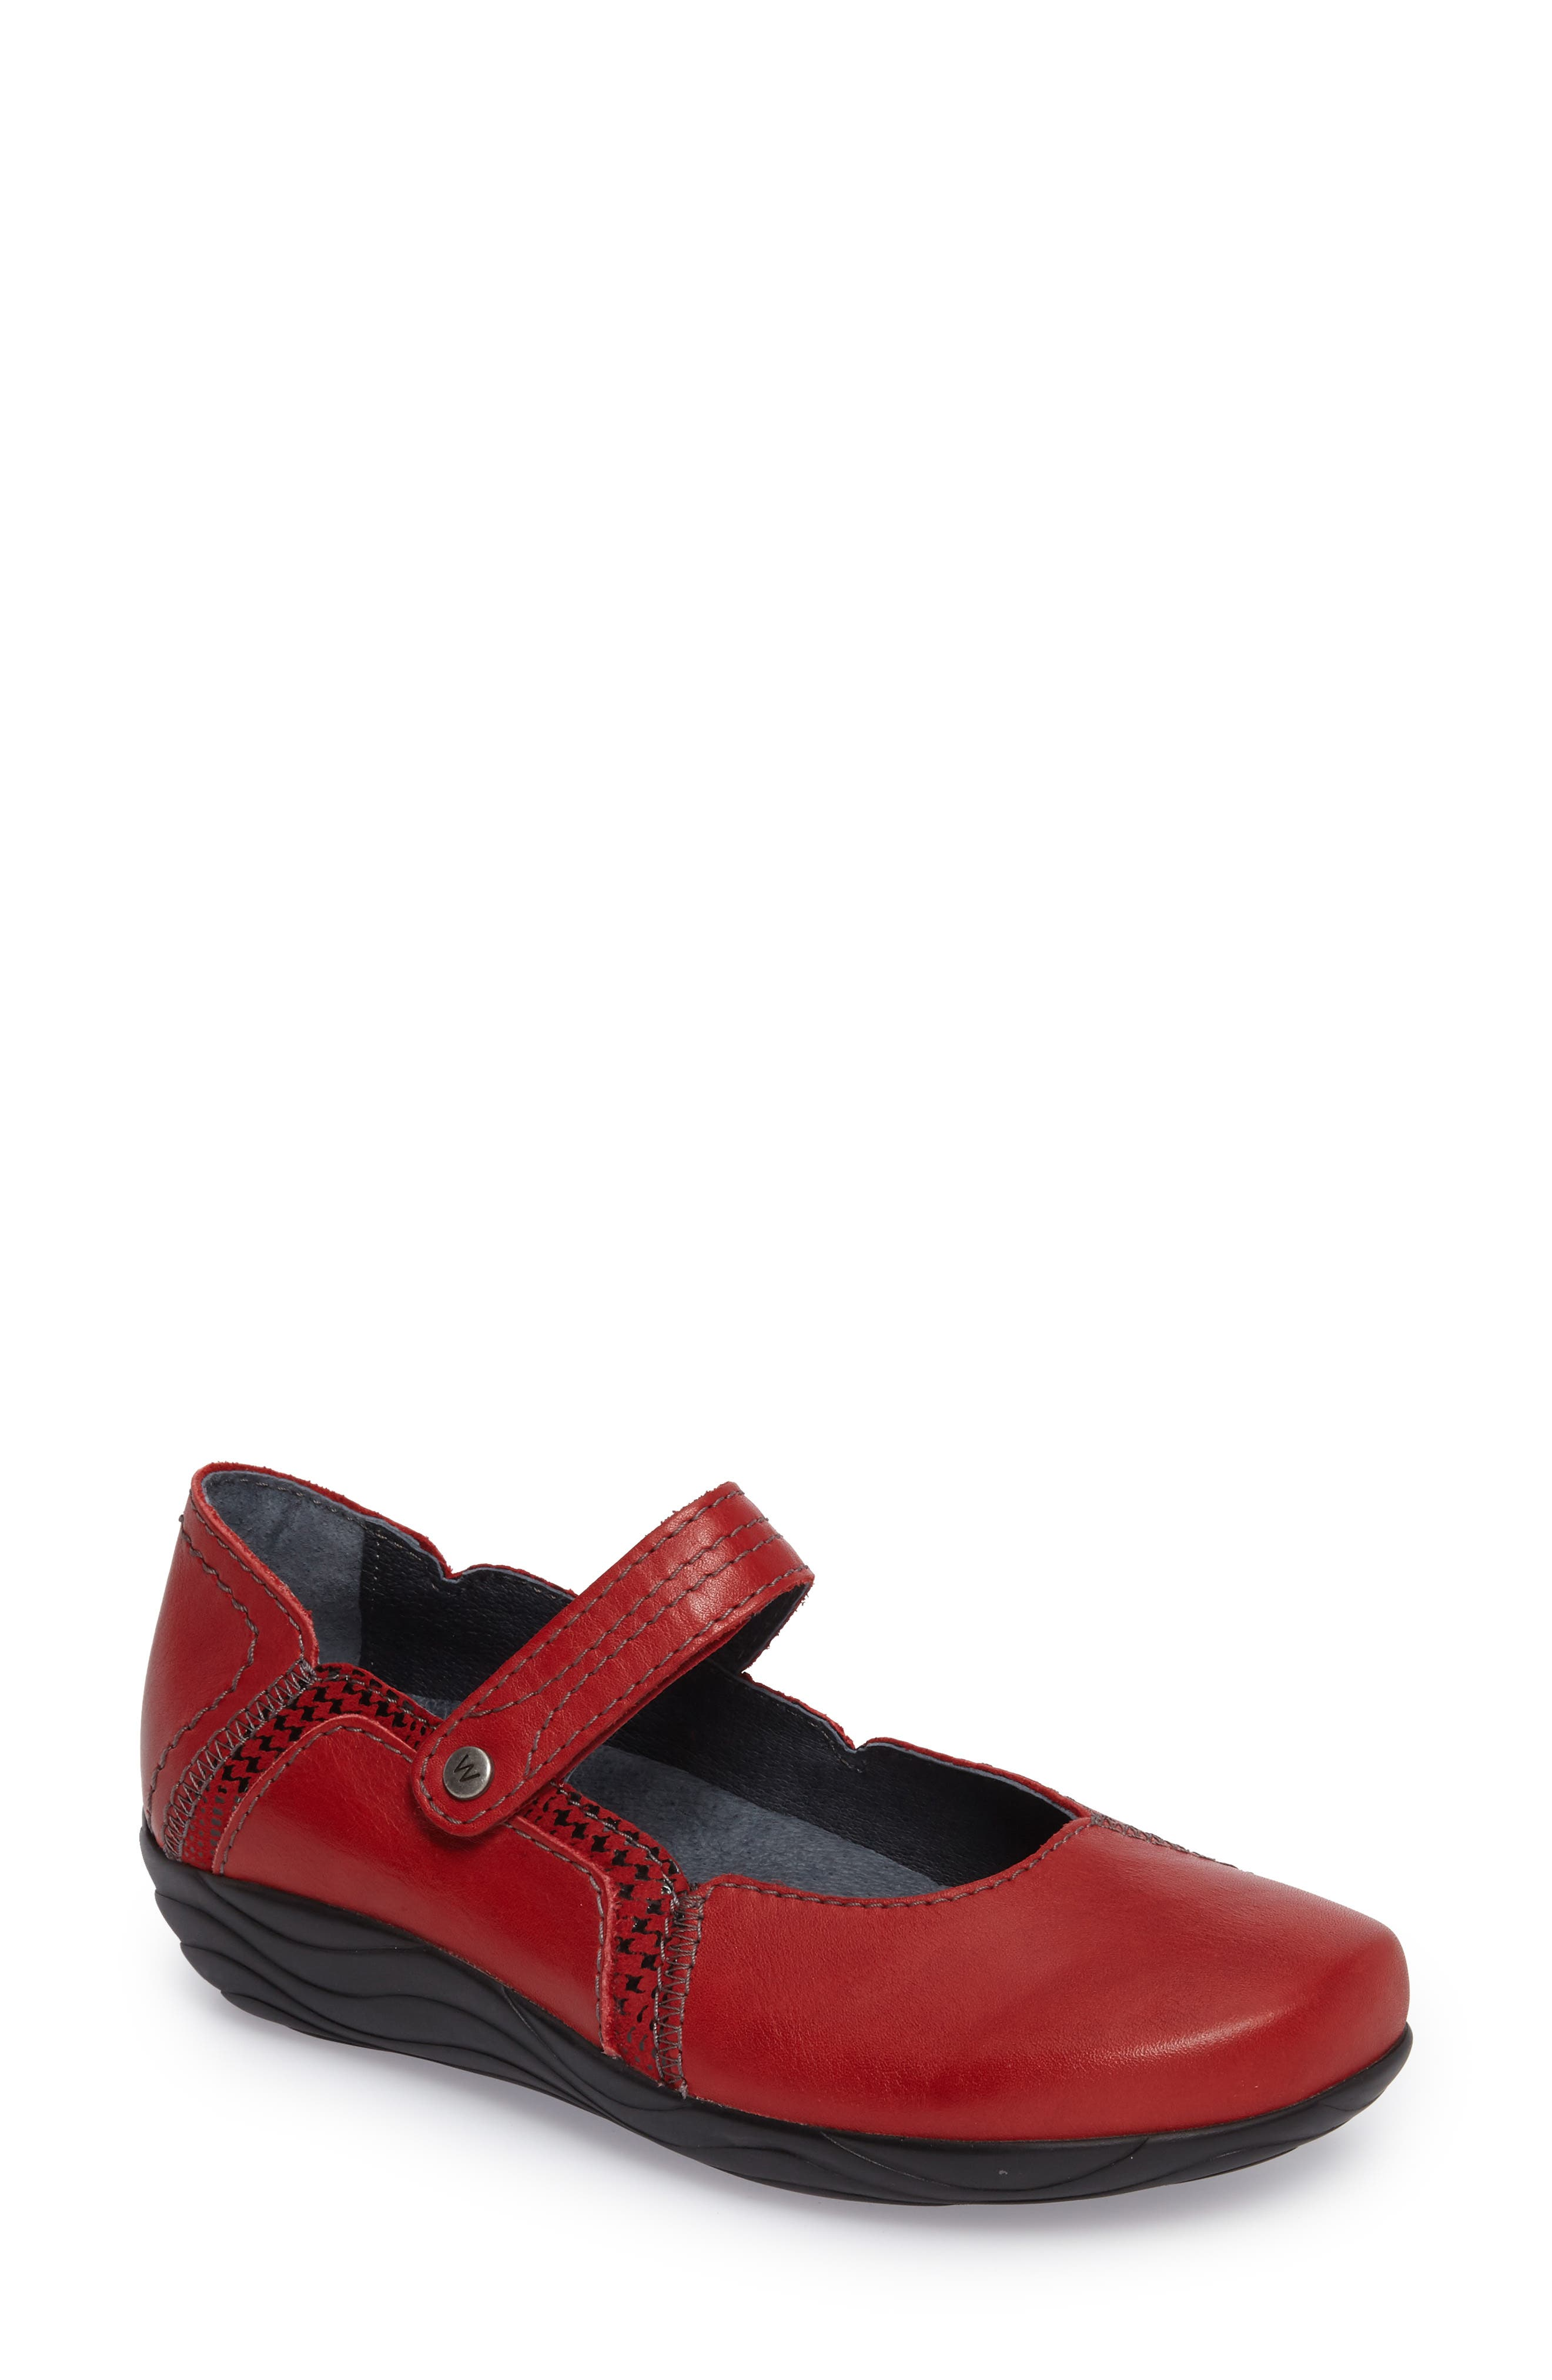 Gila Mary-Jane Flat,                             Main thumbnail 1, color,                             RED LEATHER